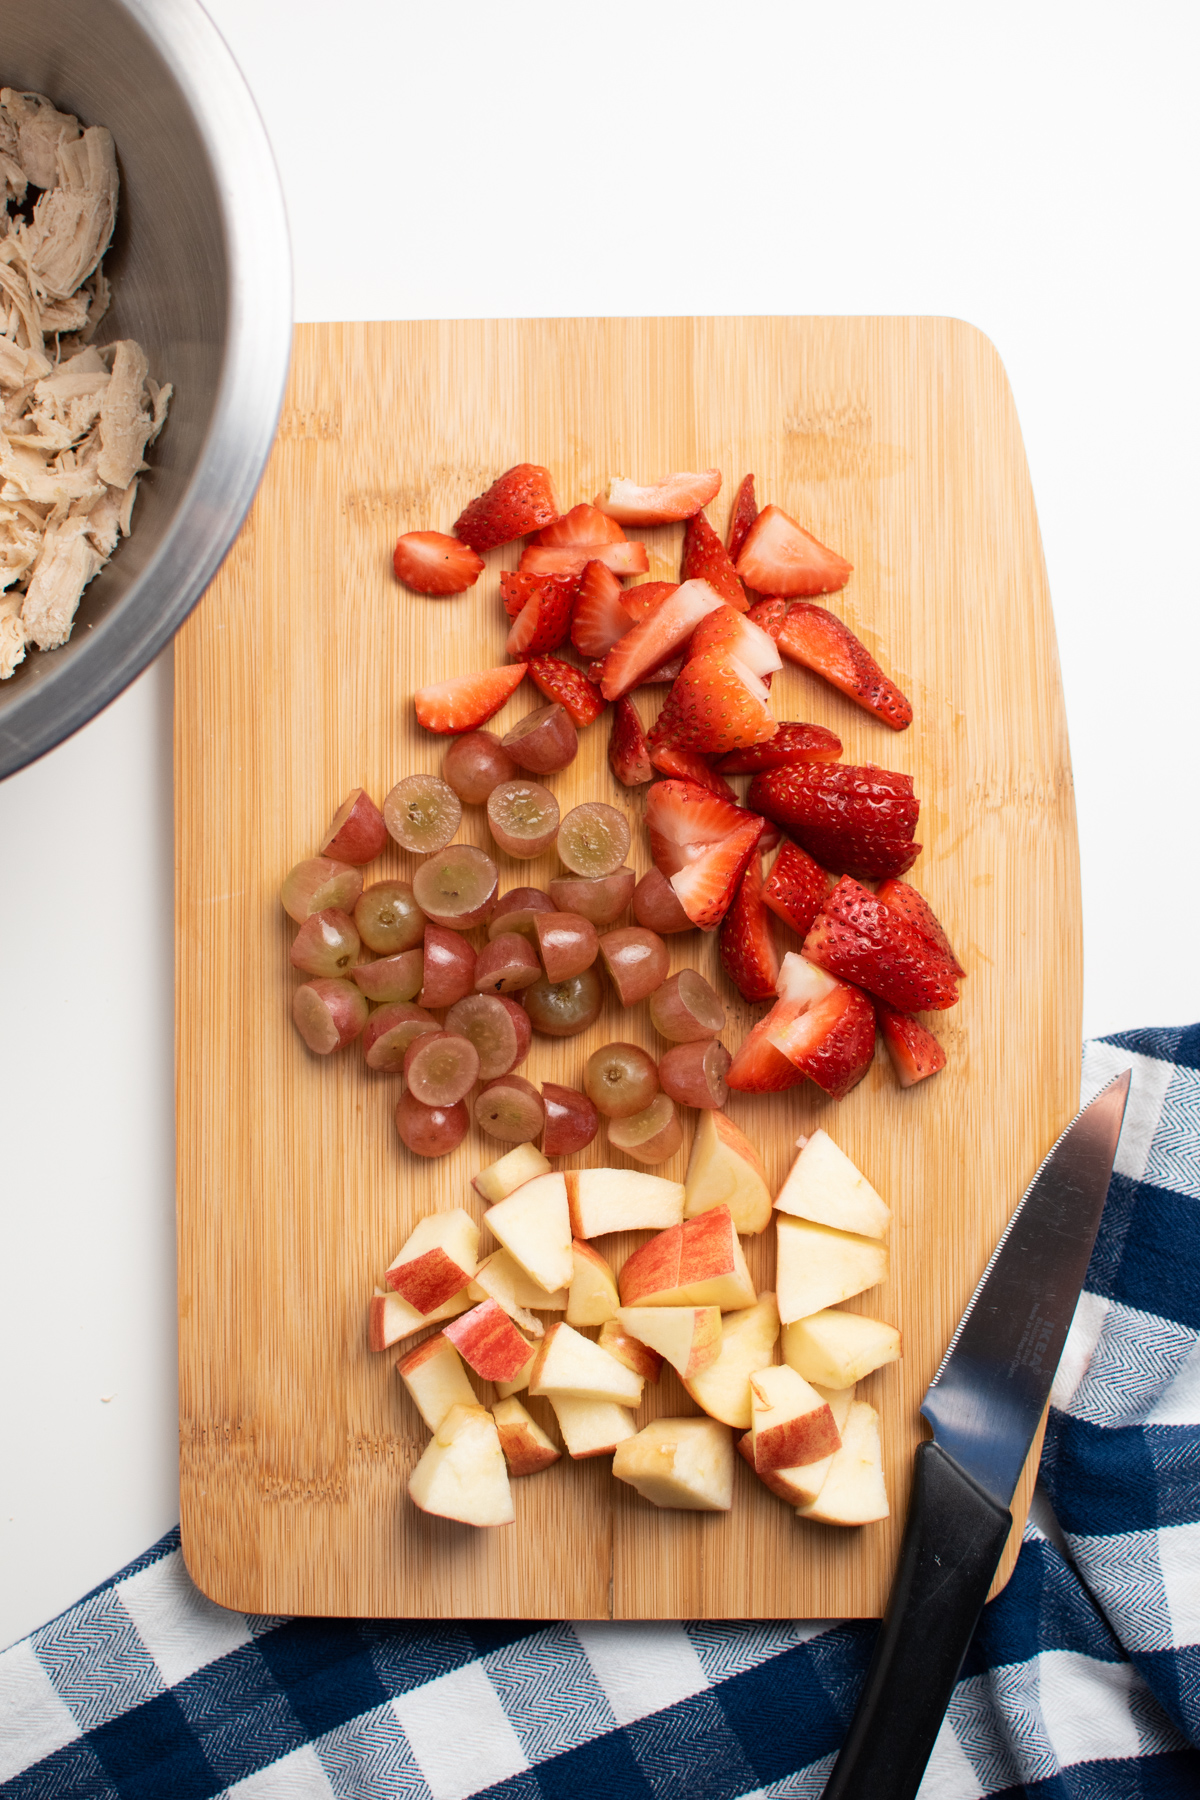 Chopped strawberries, grapes, and apples on wood cutting board next to knife and bowl with chicken.